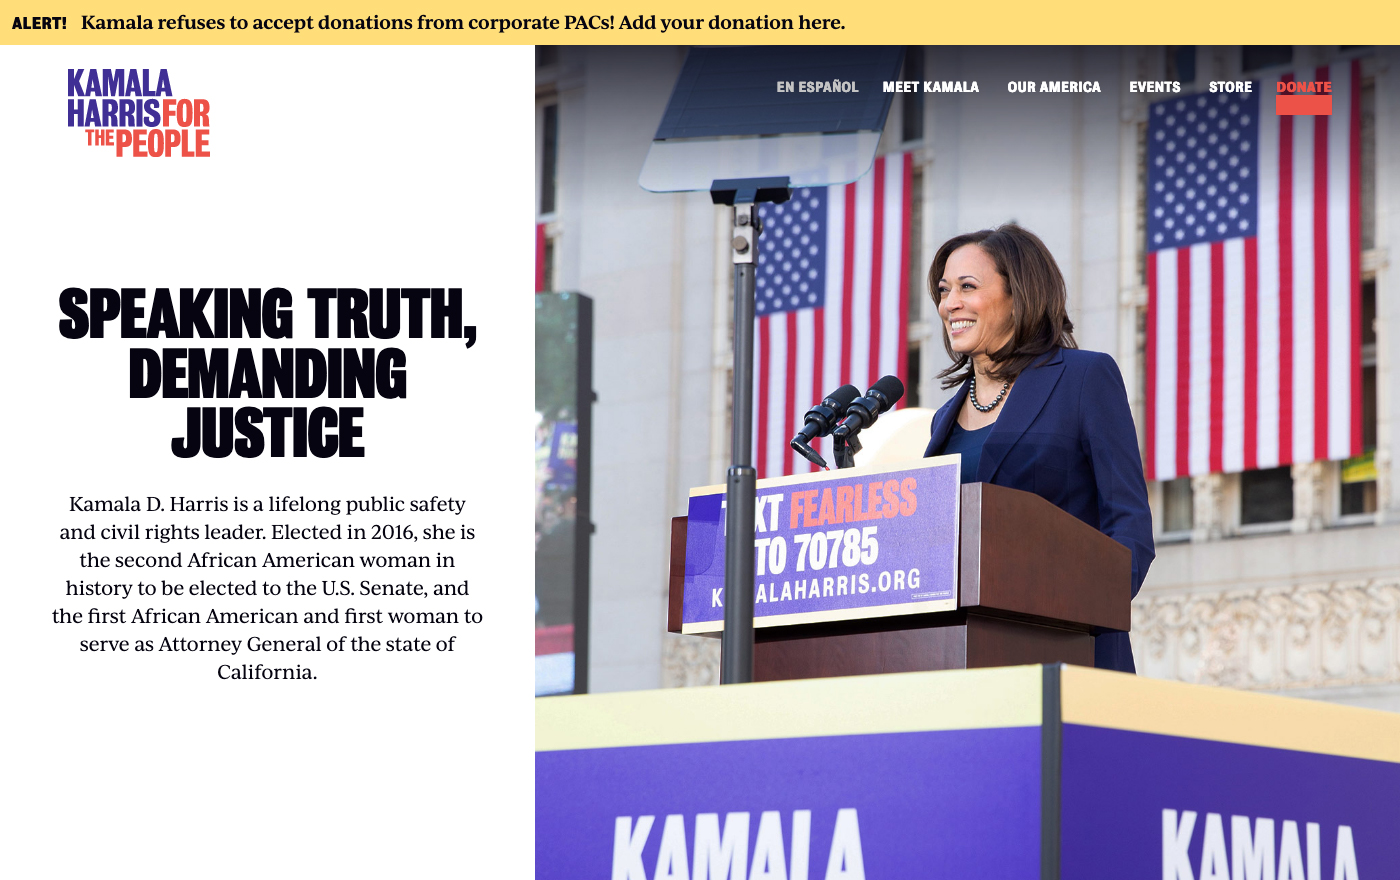 Kamala Harris For The People Fonts In Use